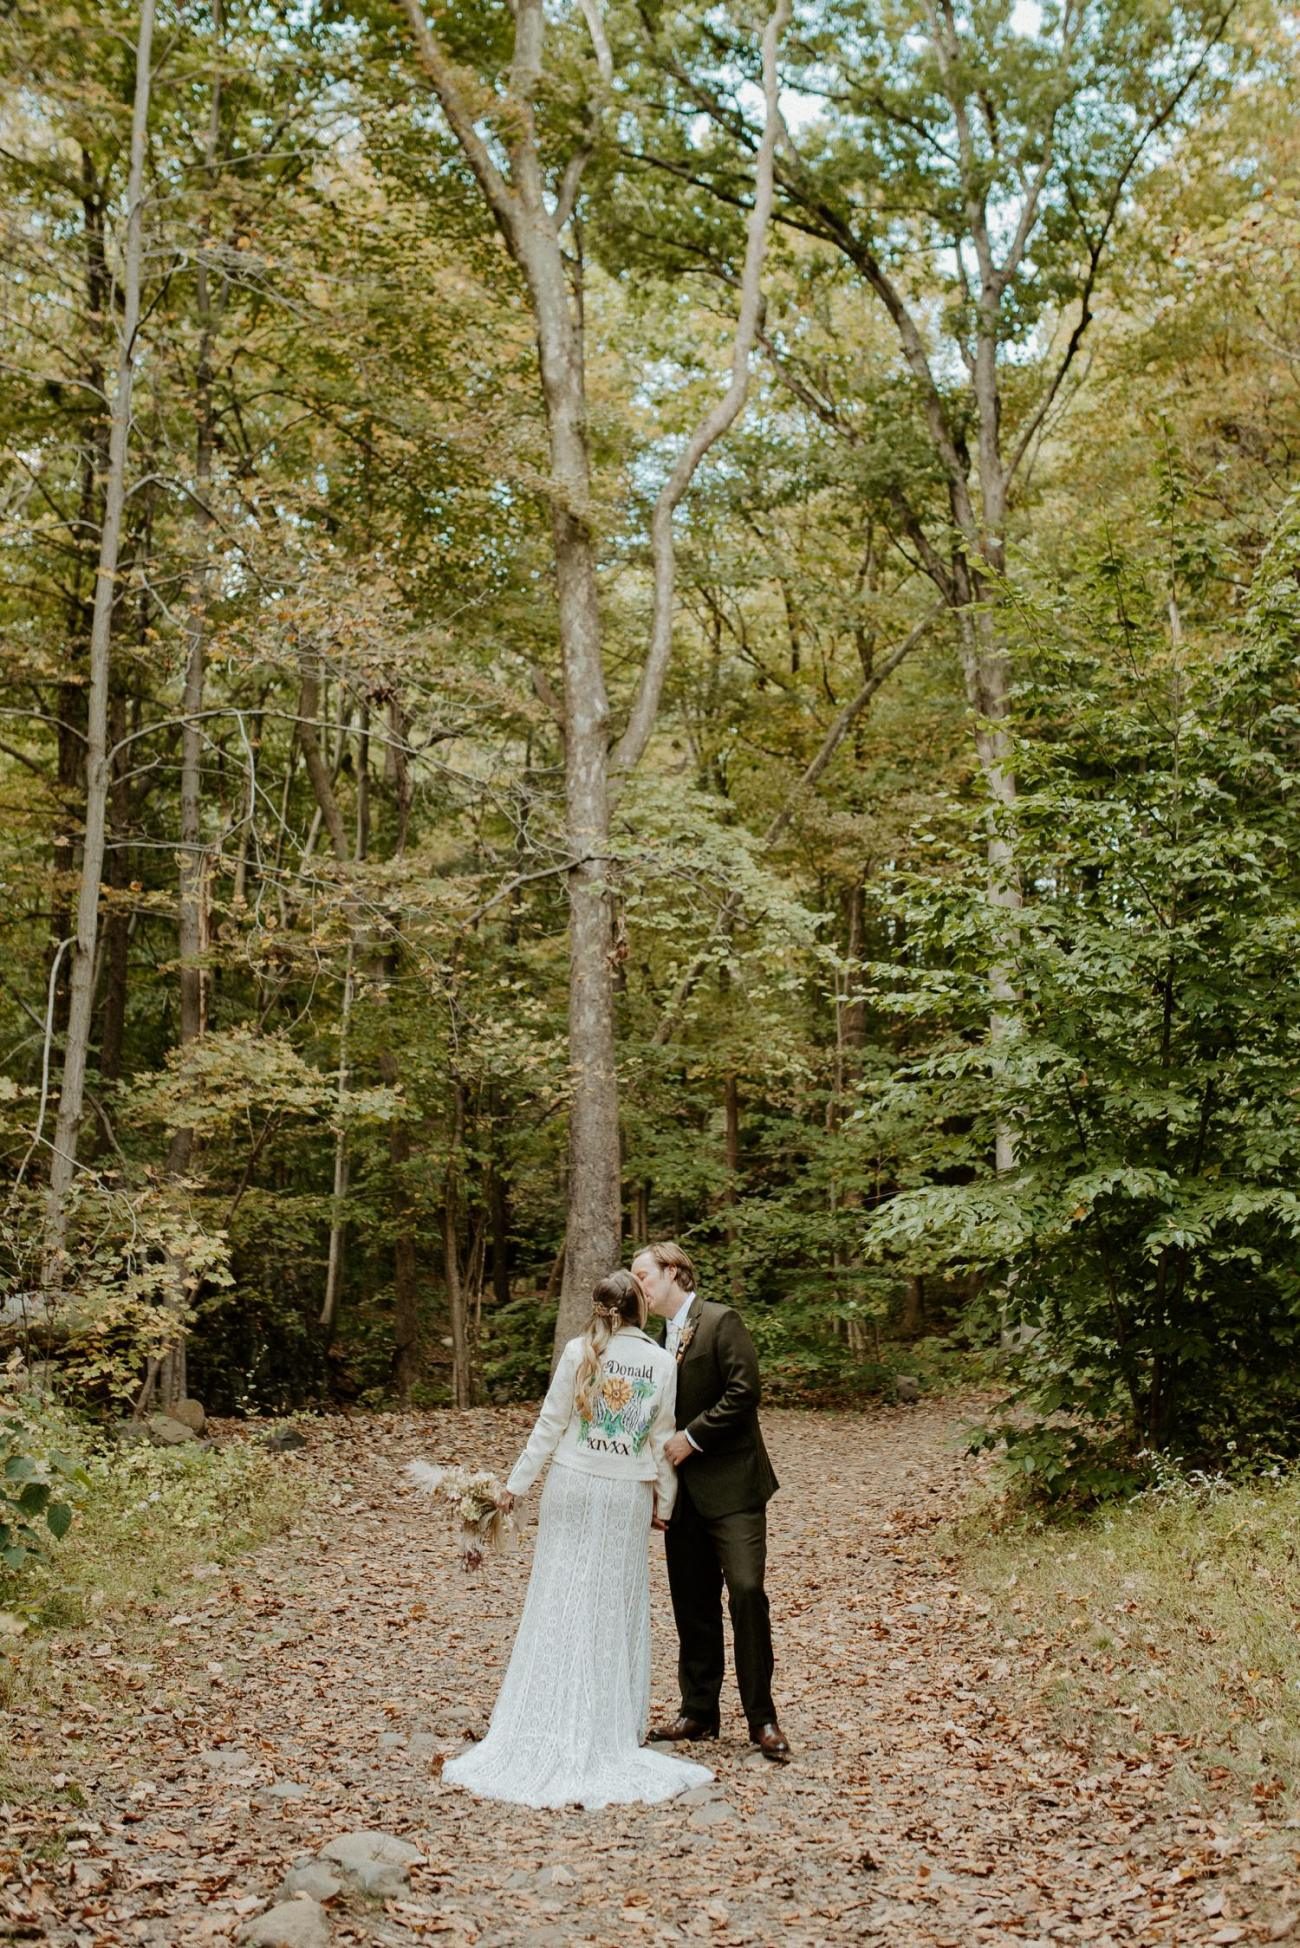 New Jersey Backyard Wedding Vintage Boho Wedding Hemlock Falls NJ Bend Oregon Wedding Phtographer Anais Possamai Photography 022